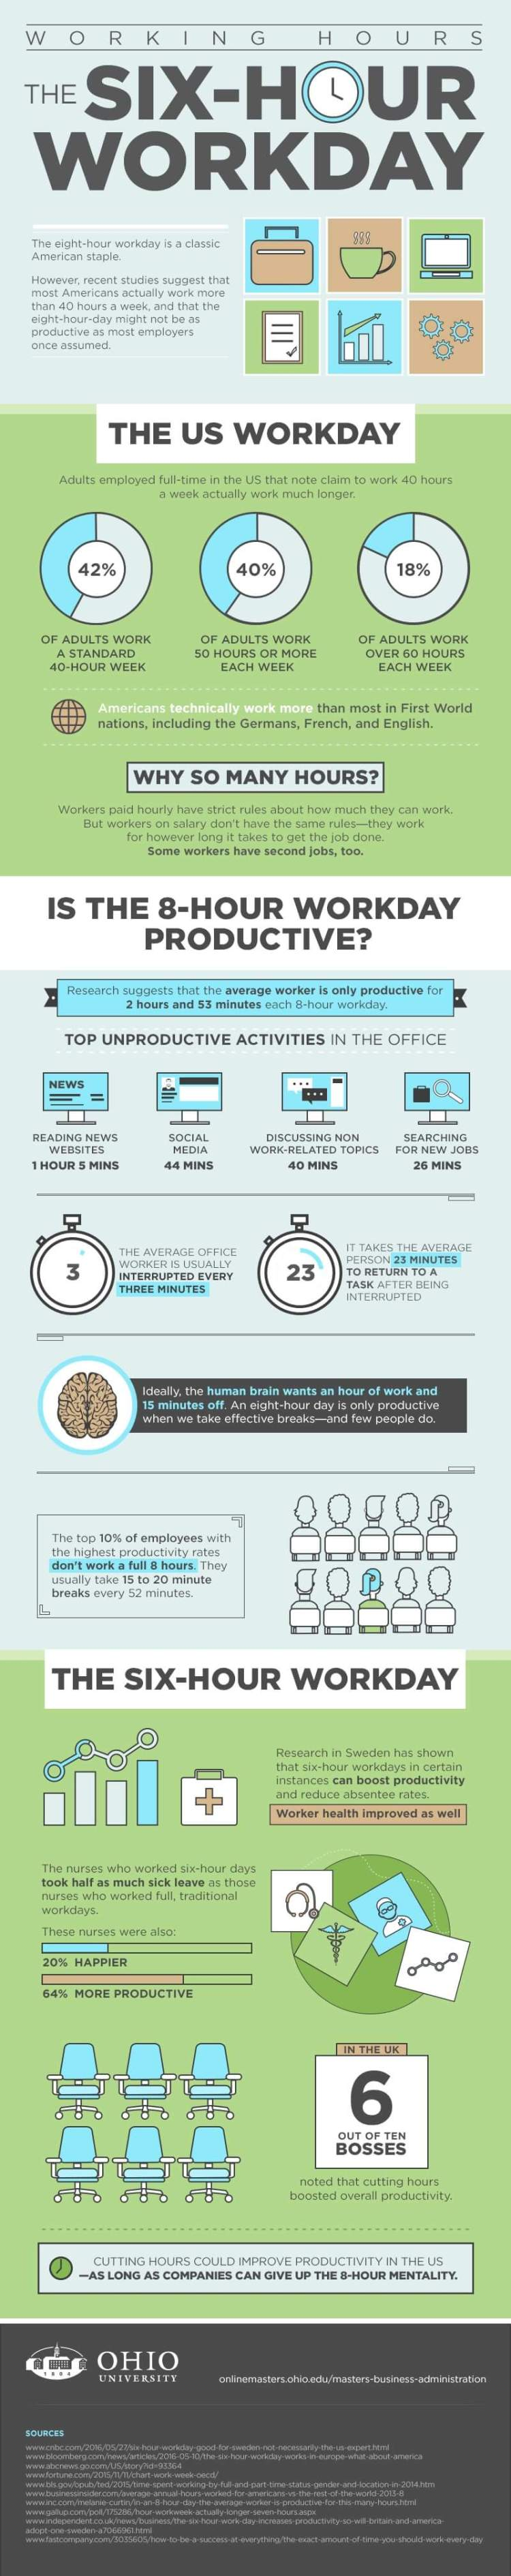 Six Hour Workday infographic